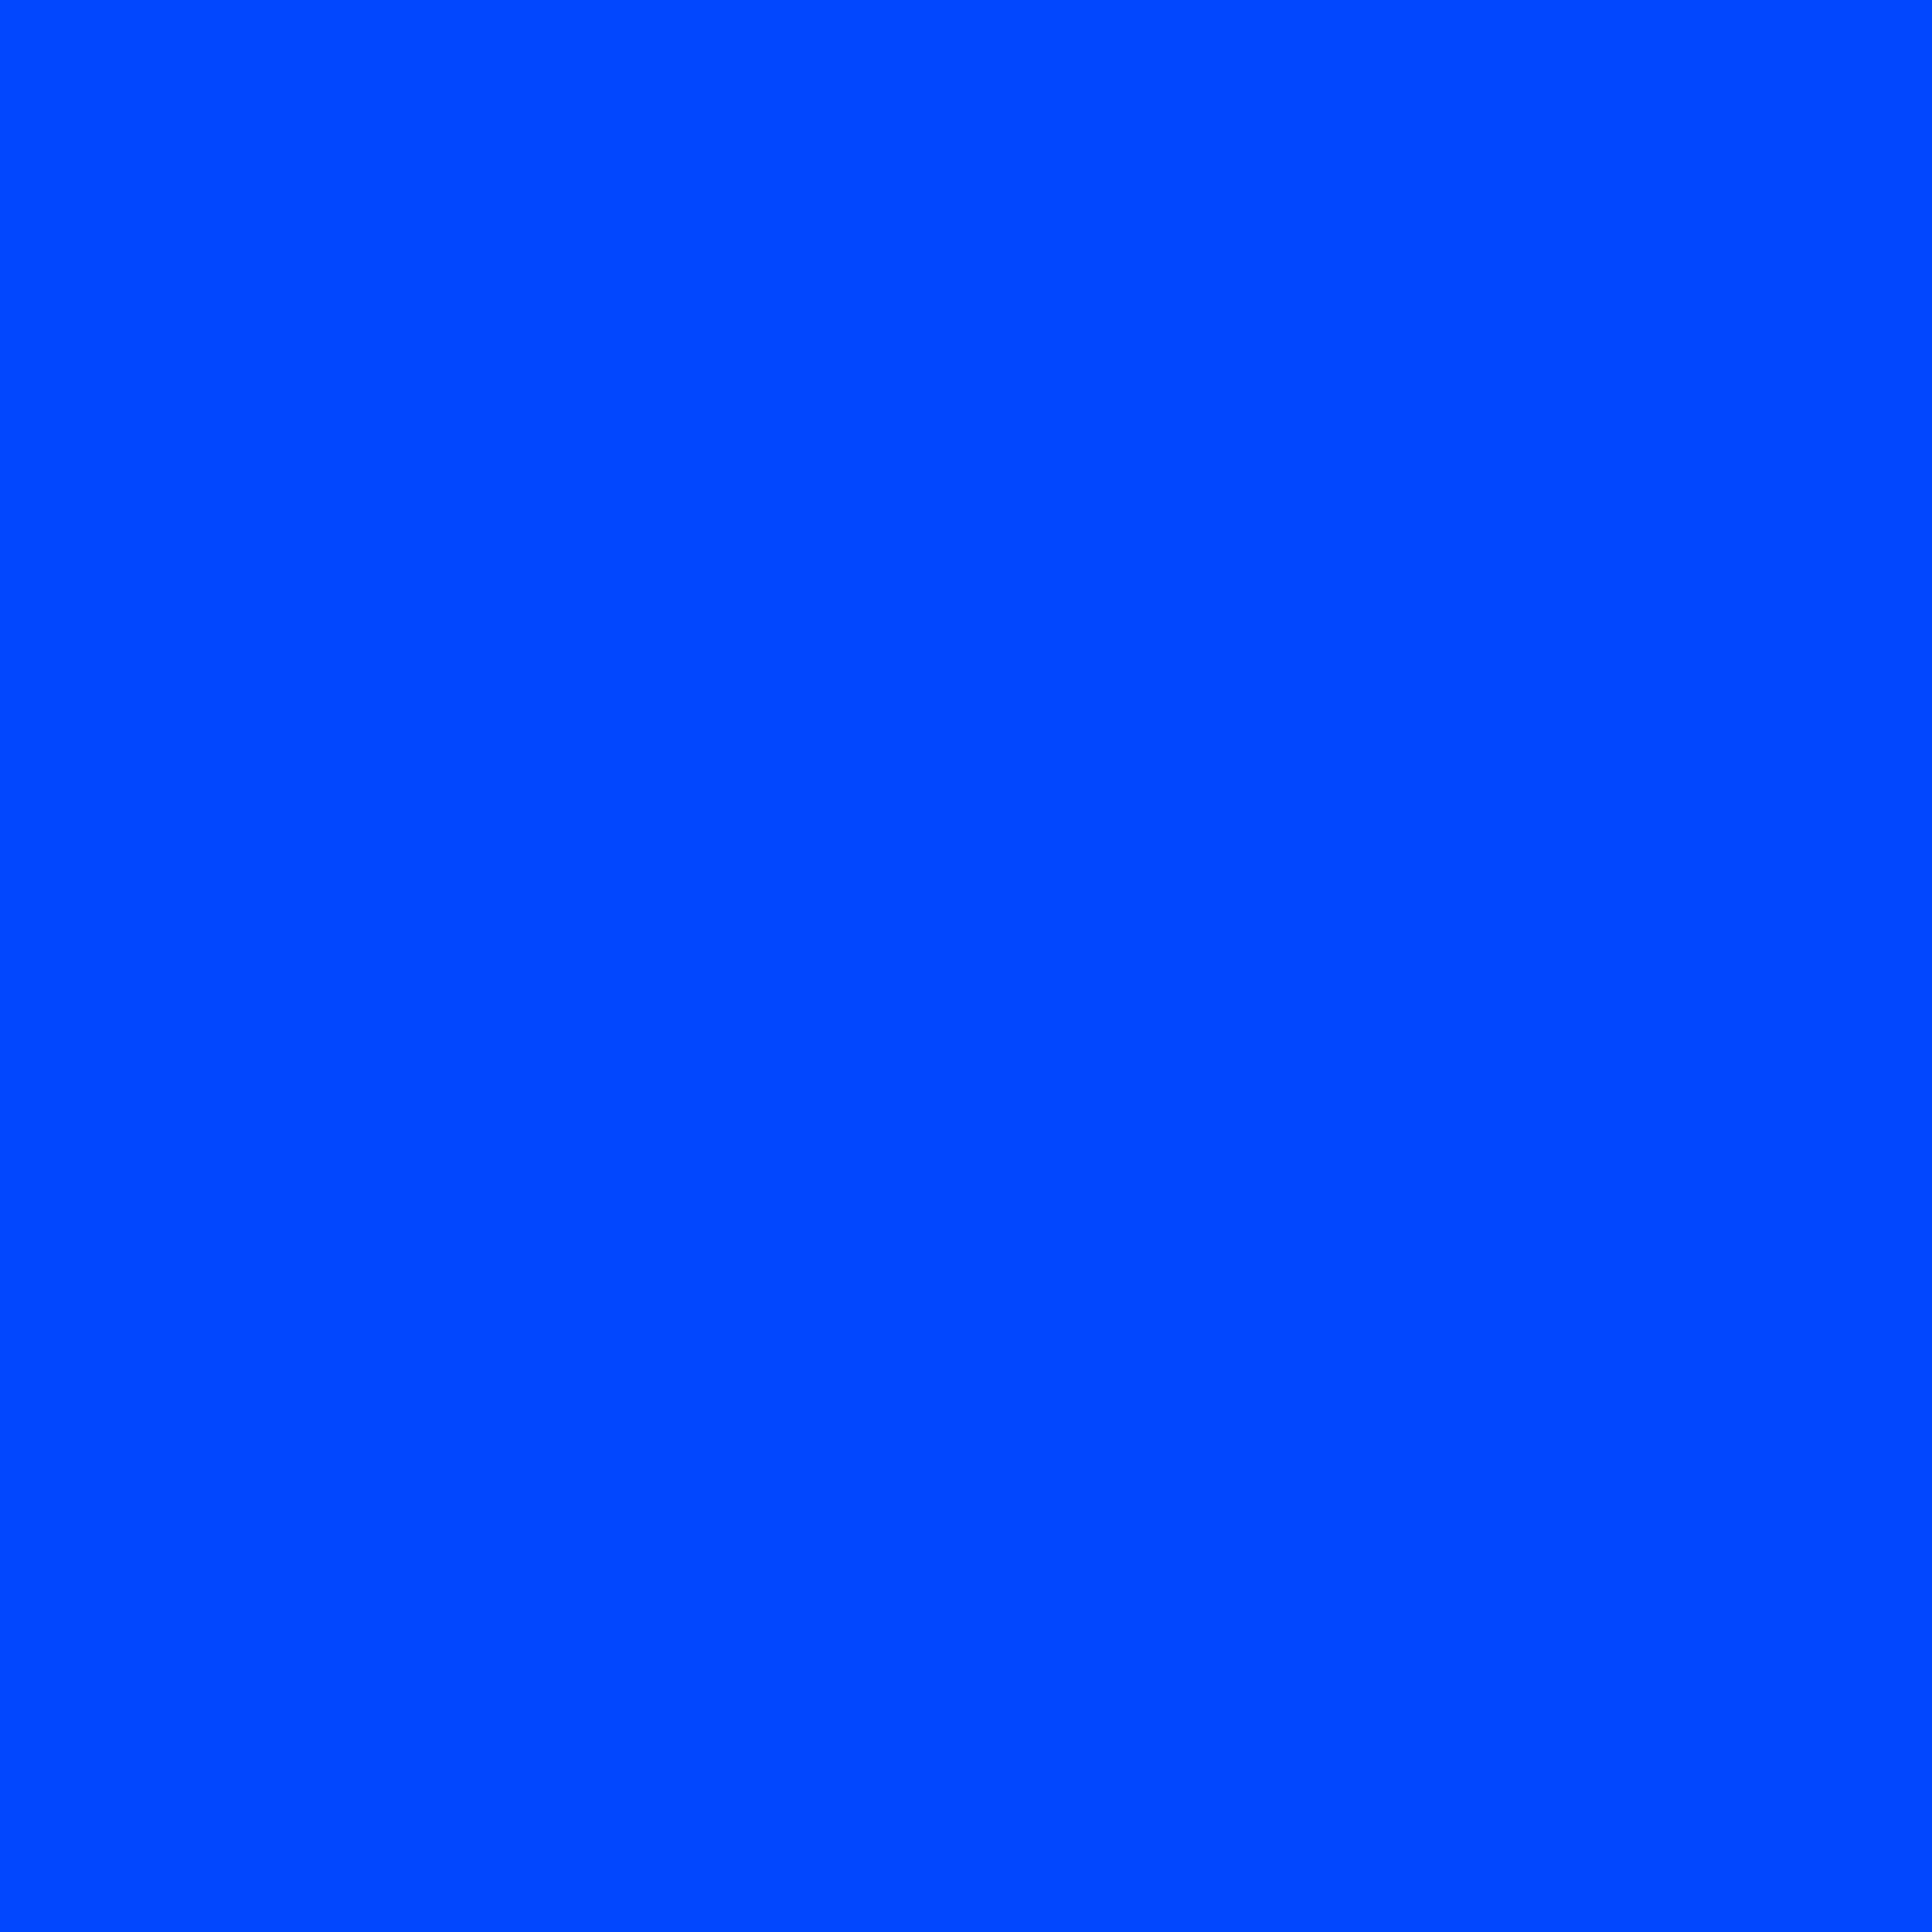 3600x3600 Blue RYB Solid Color Background